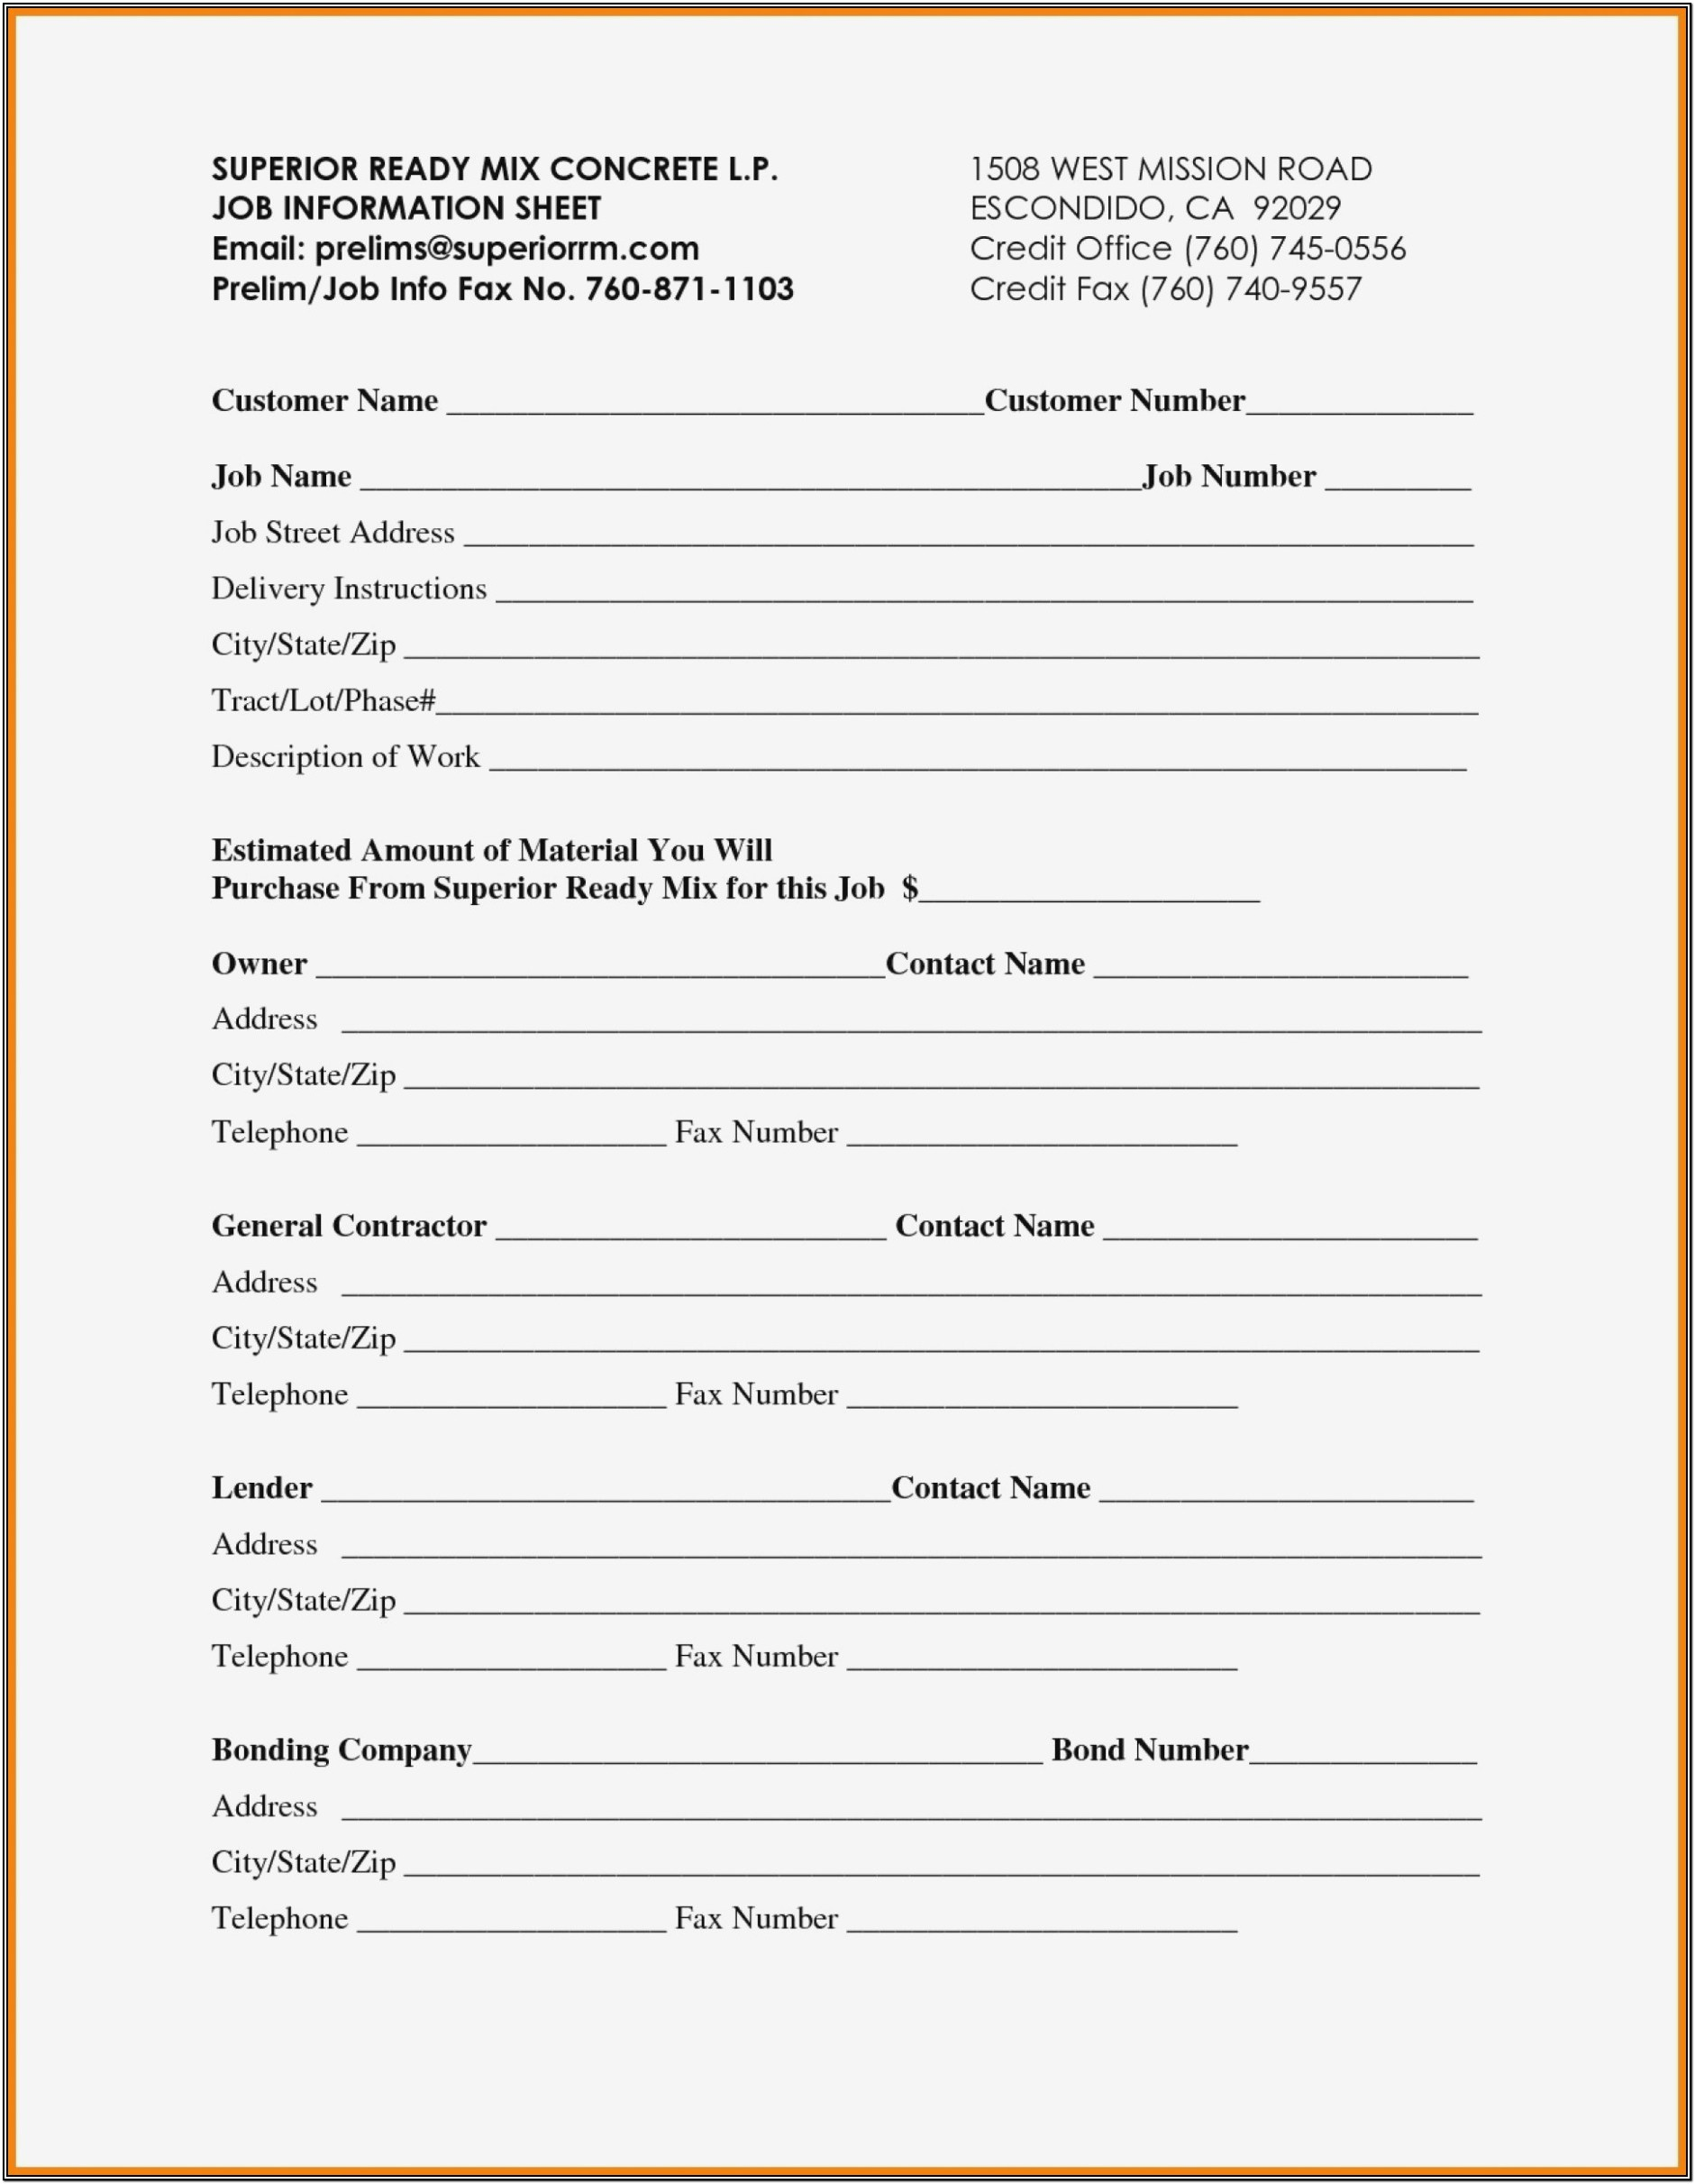 1096 Transmittal Form 2018